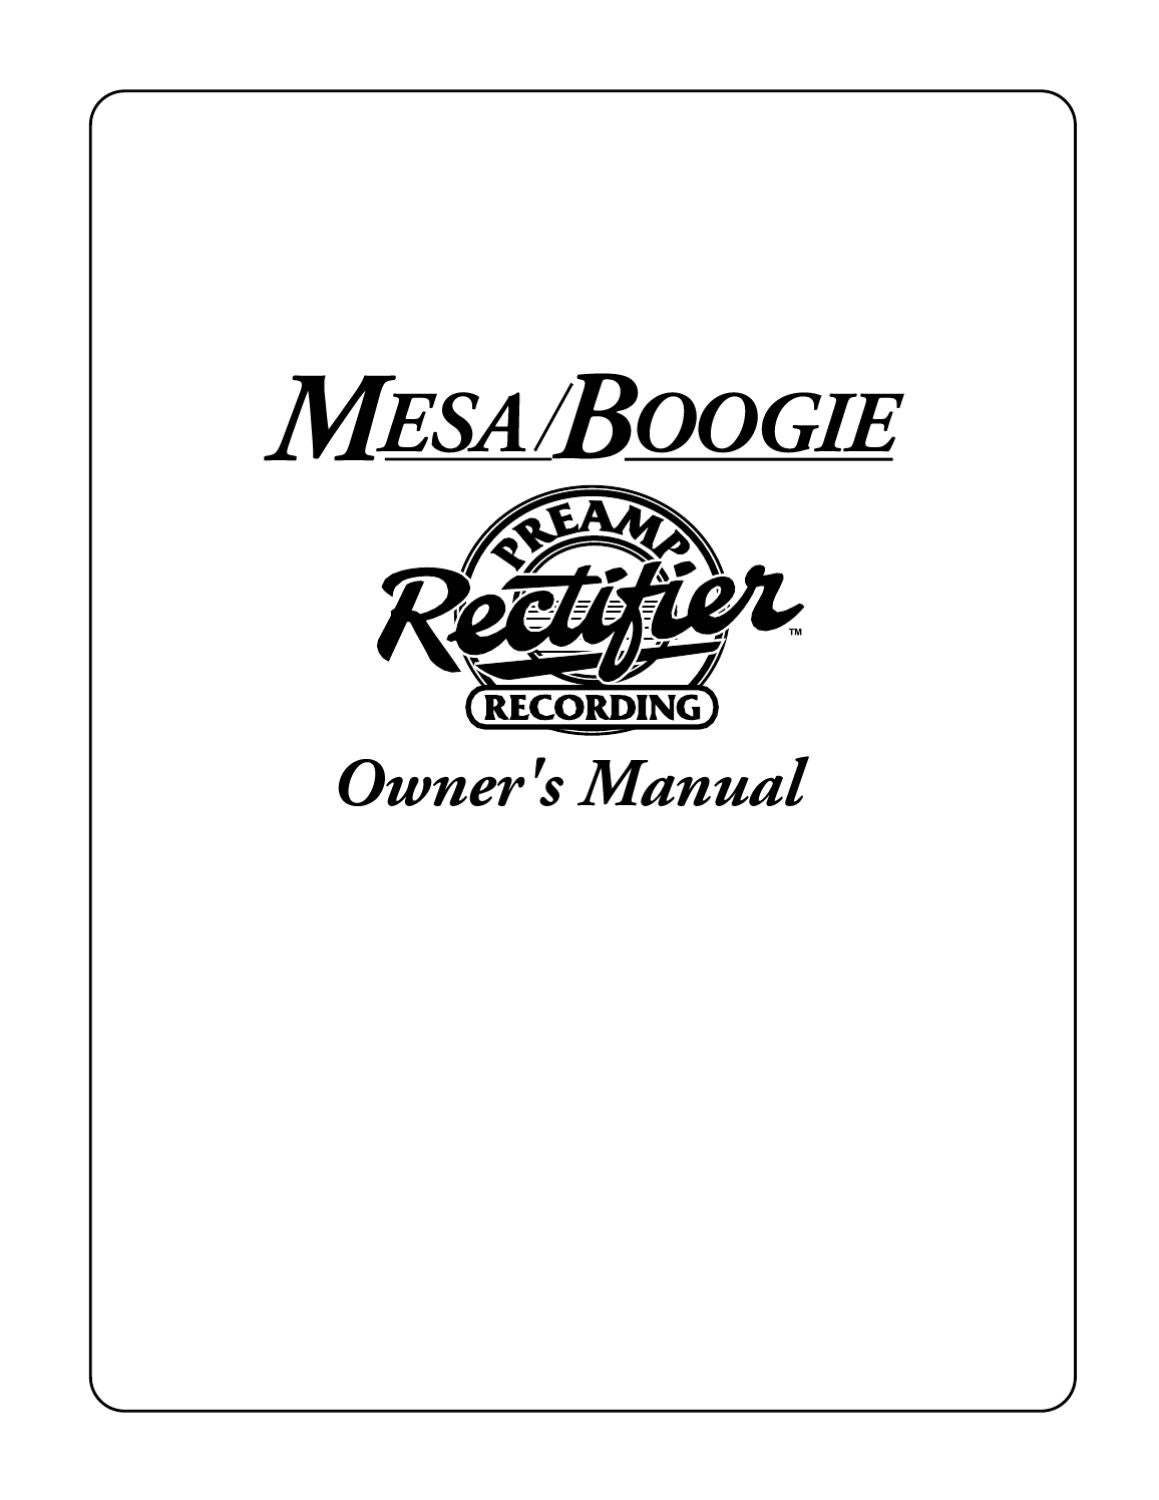 Manual Pre Amplificador Mesa Boogie Rectifier Recording Sonigate Many Parts Of Dual Solo Head Schematic Diagram By Issuu